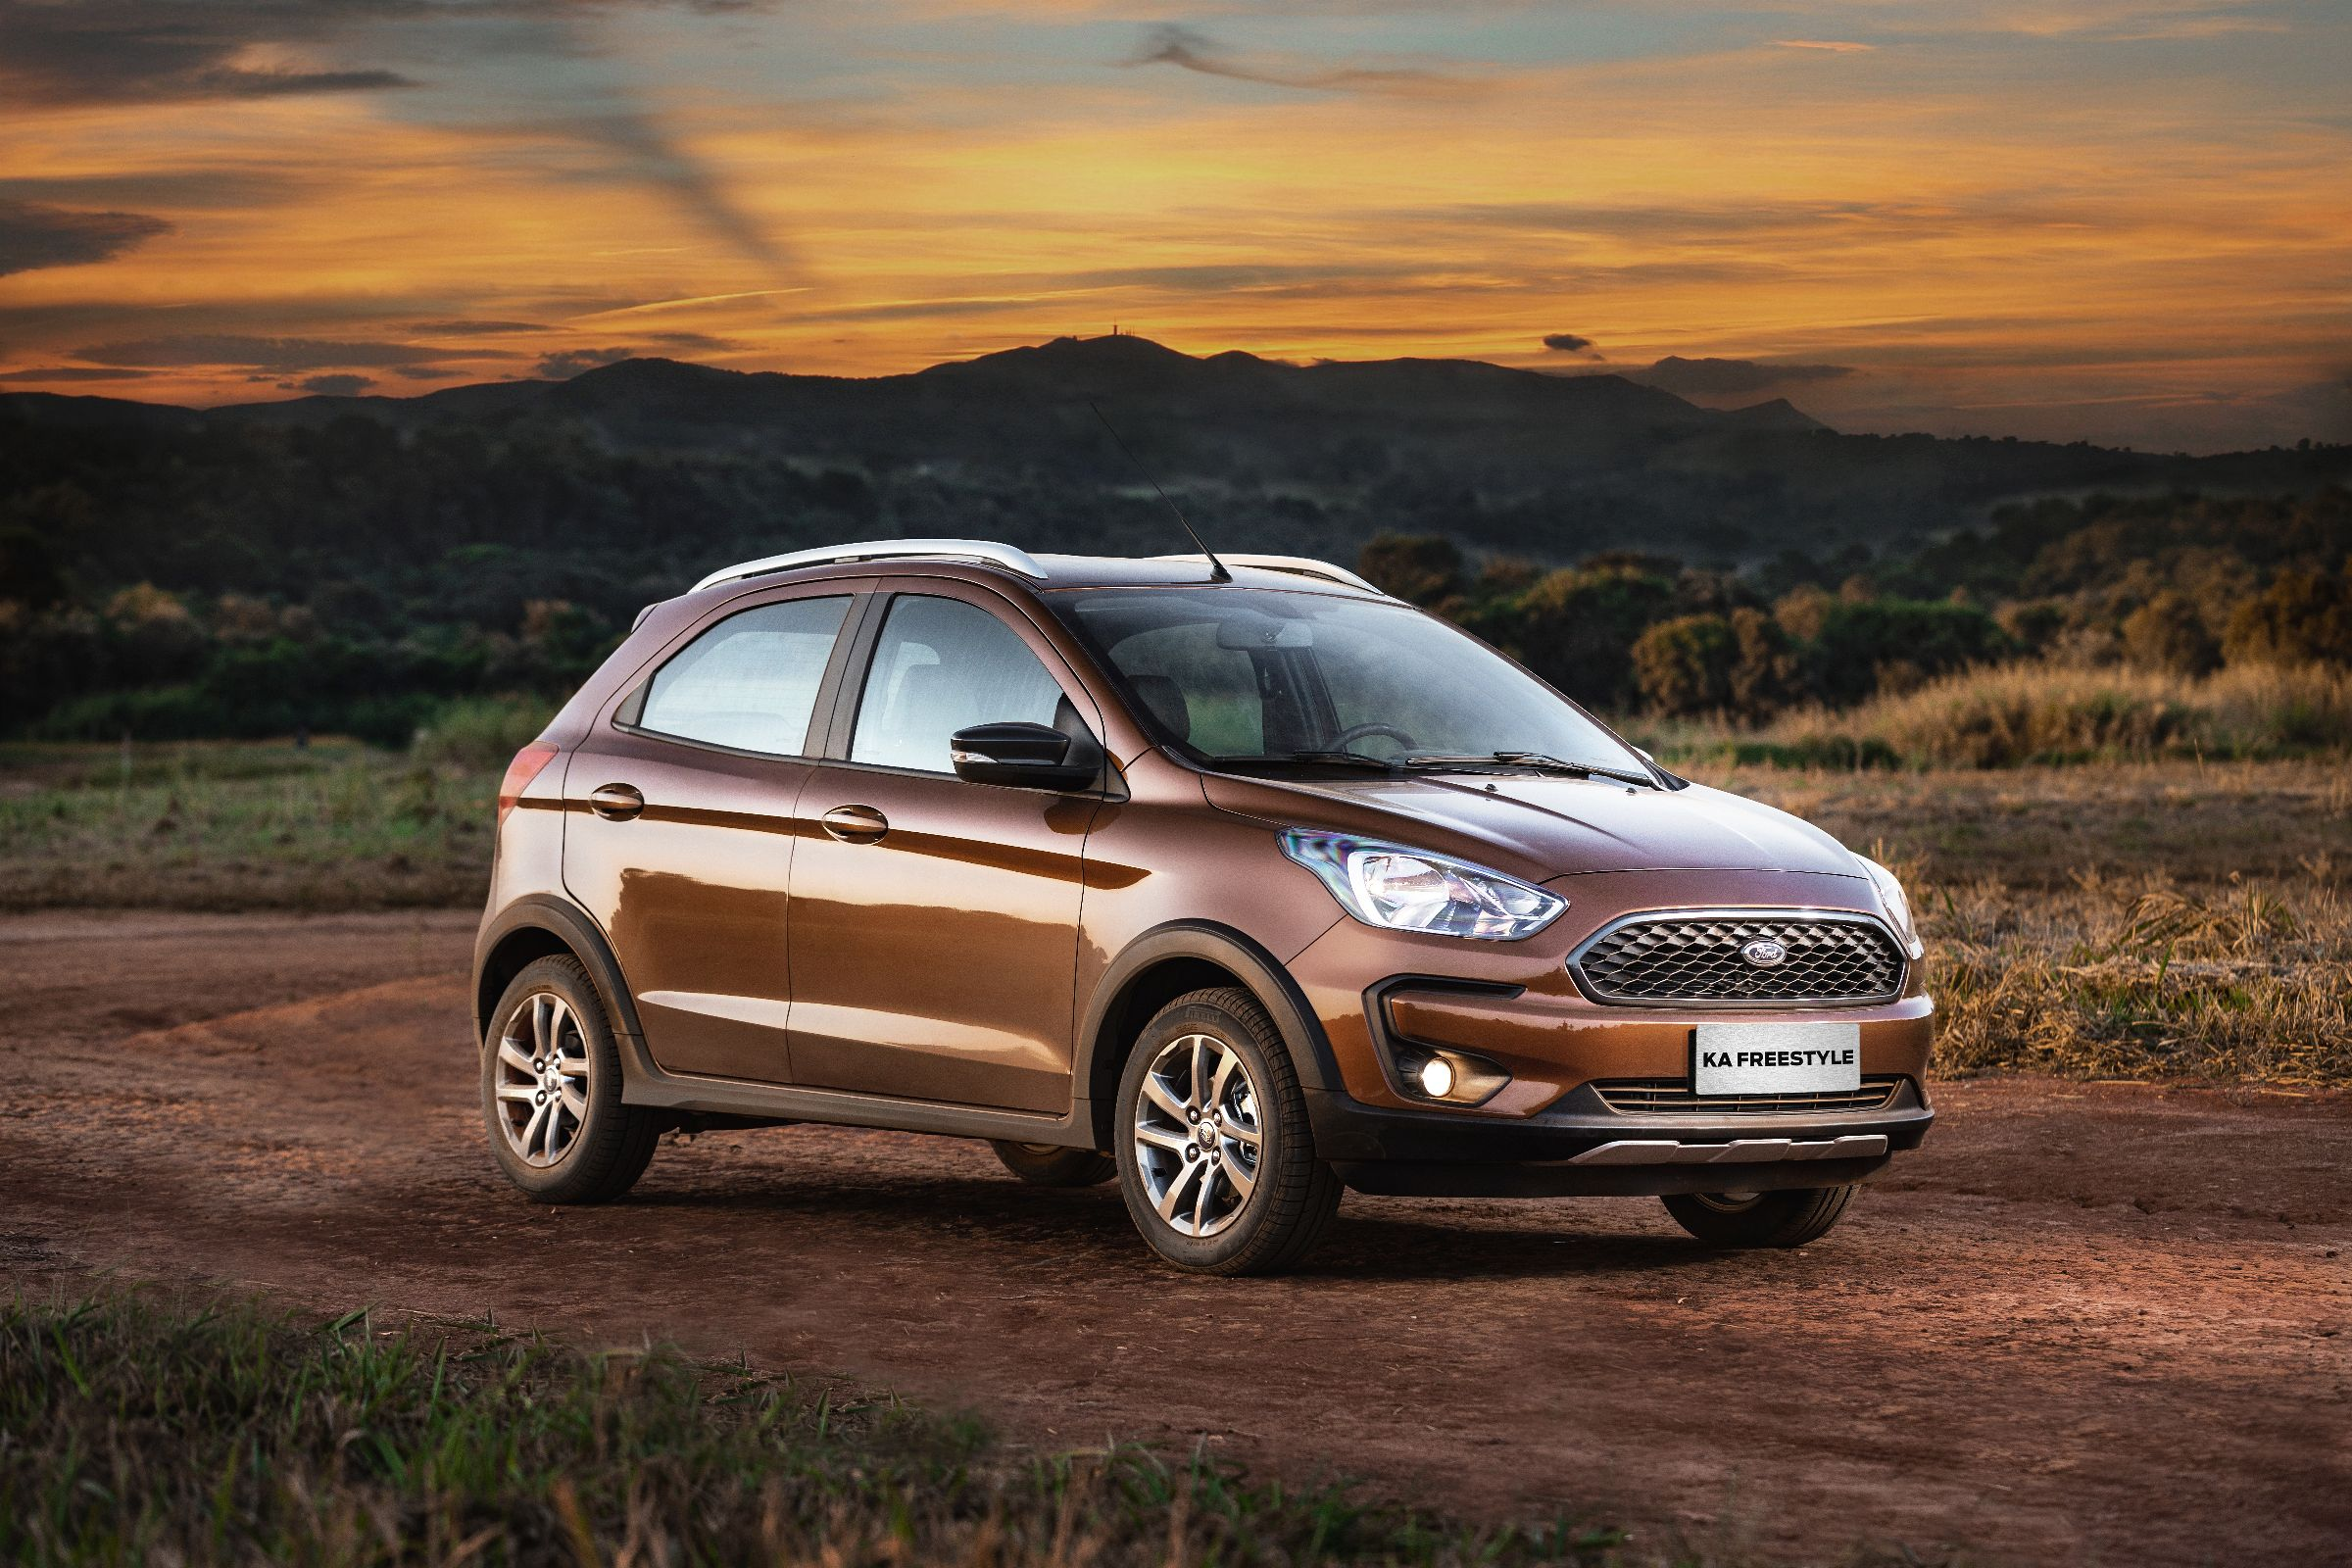 Freestyle E A Versao Aventureira Do Ford Ka